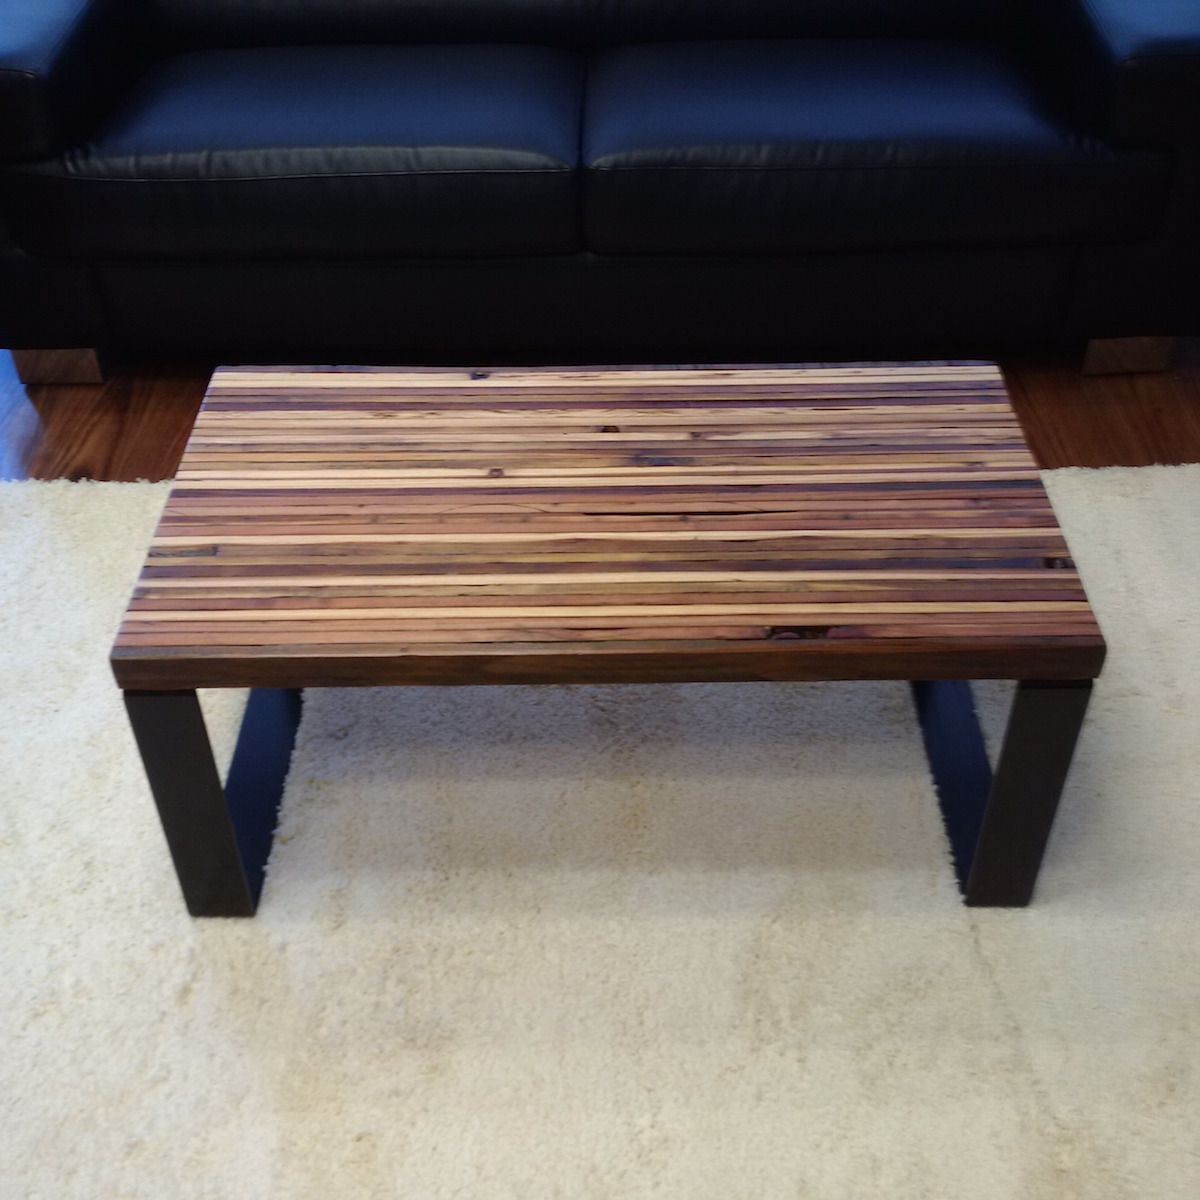 Buy A Custom Reclaimed Barn Wood Coffee Table Made To Order From Sweet Redemption Design